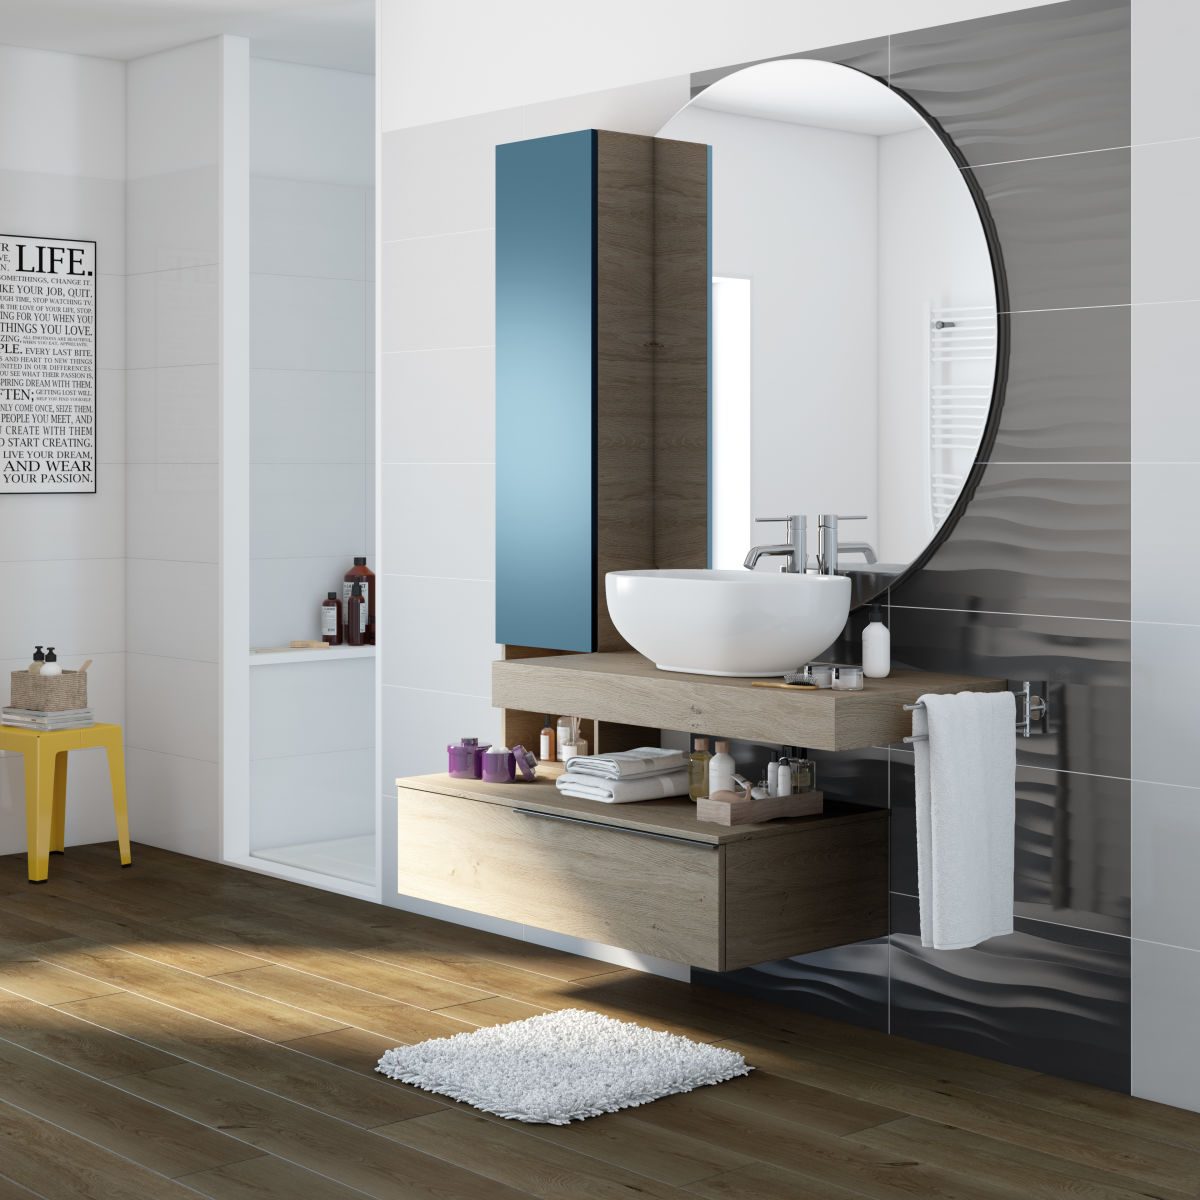 awesome mobiletti bagno leroy merlin pictures. Black Bedroom Furniture Sets. Home Design Ideas